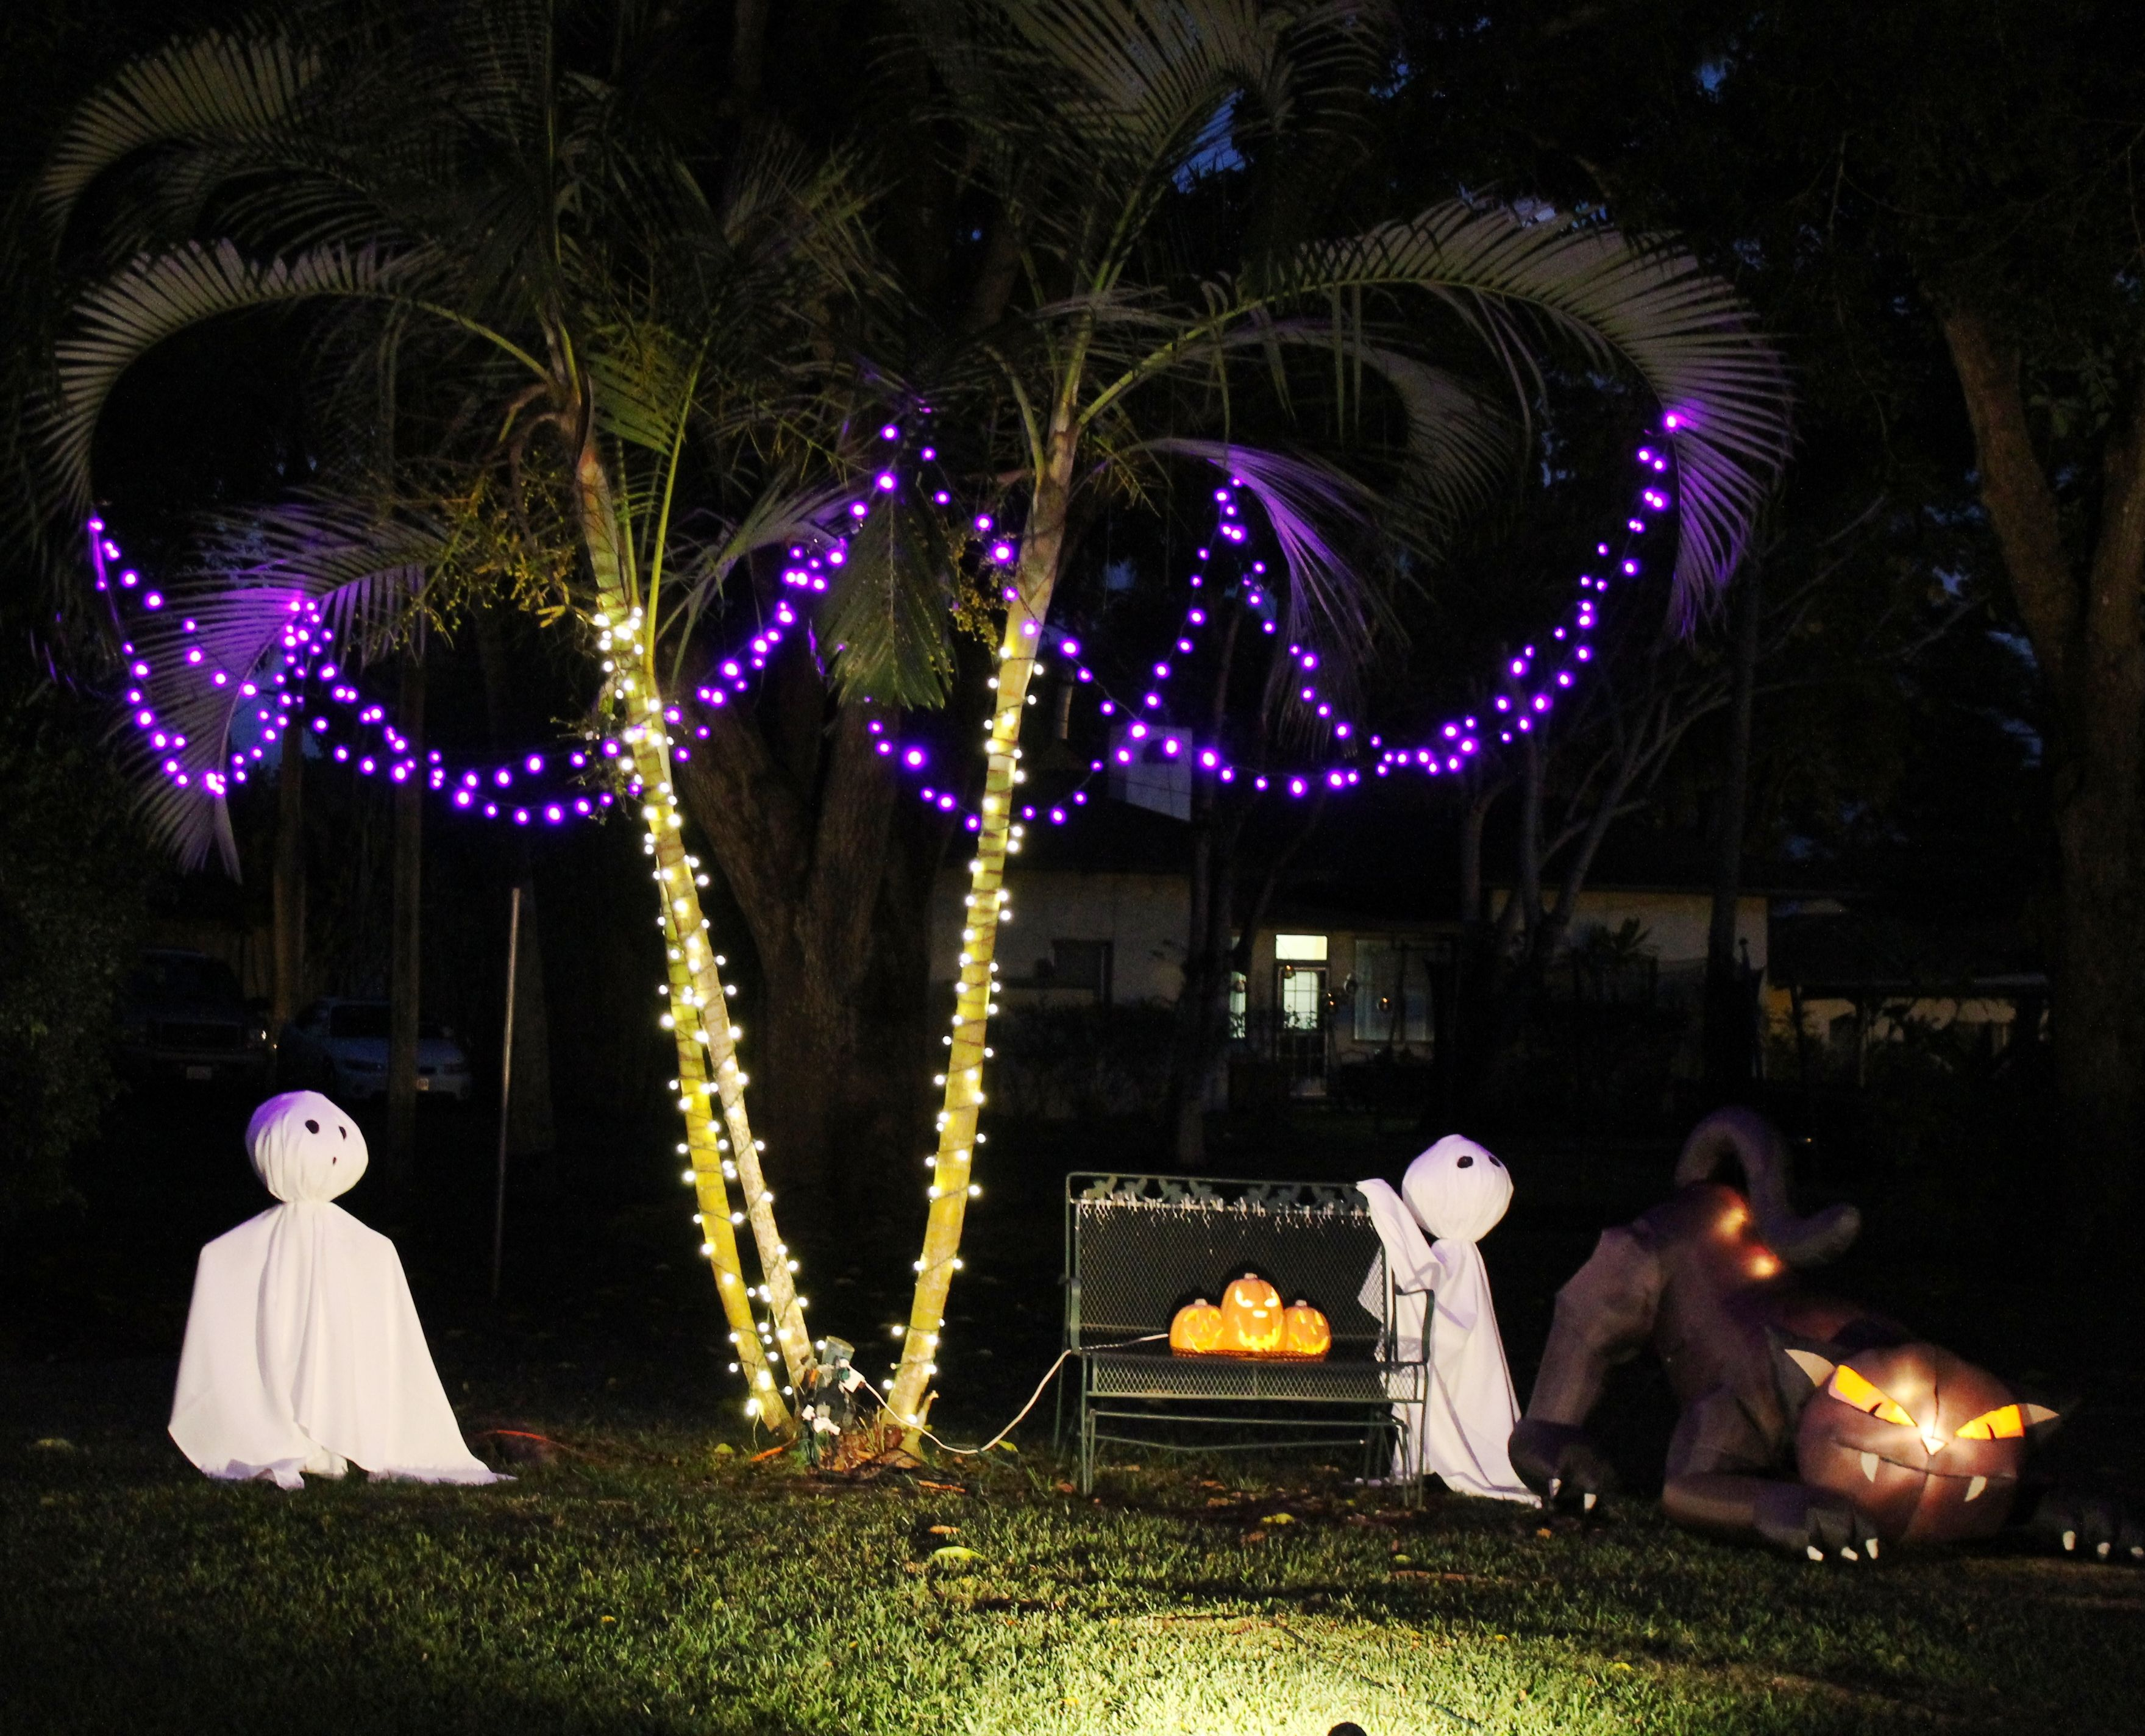 halloween decorations palm tree hawaiian style ghosts with cat under lighted hawaiian palm tree